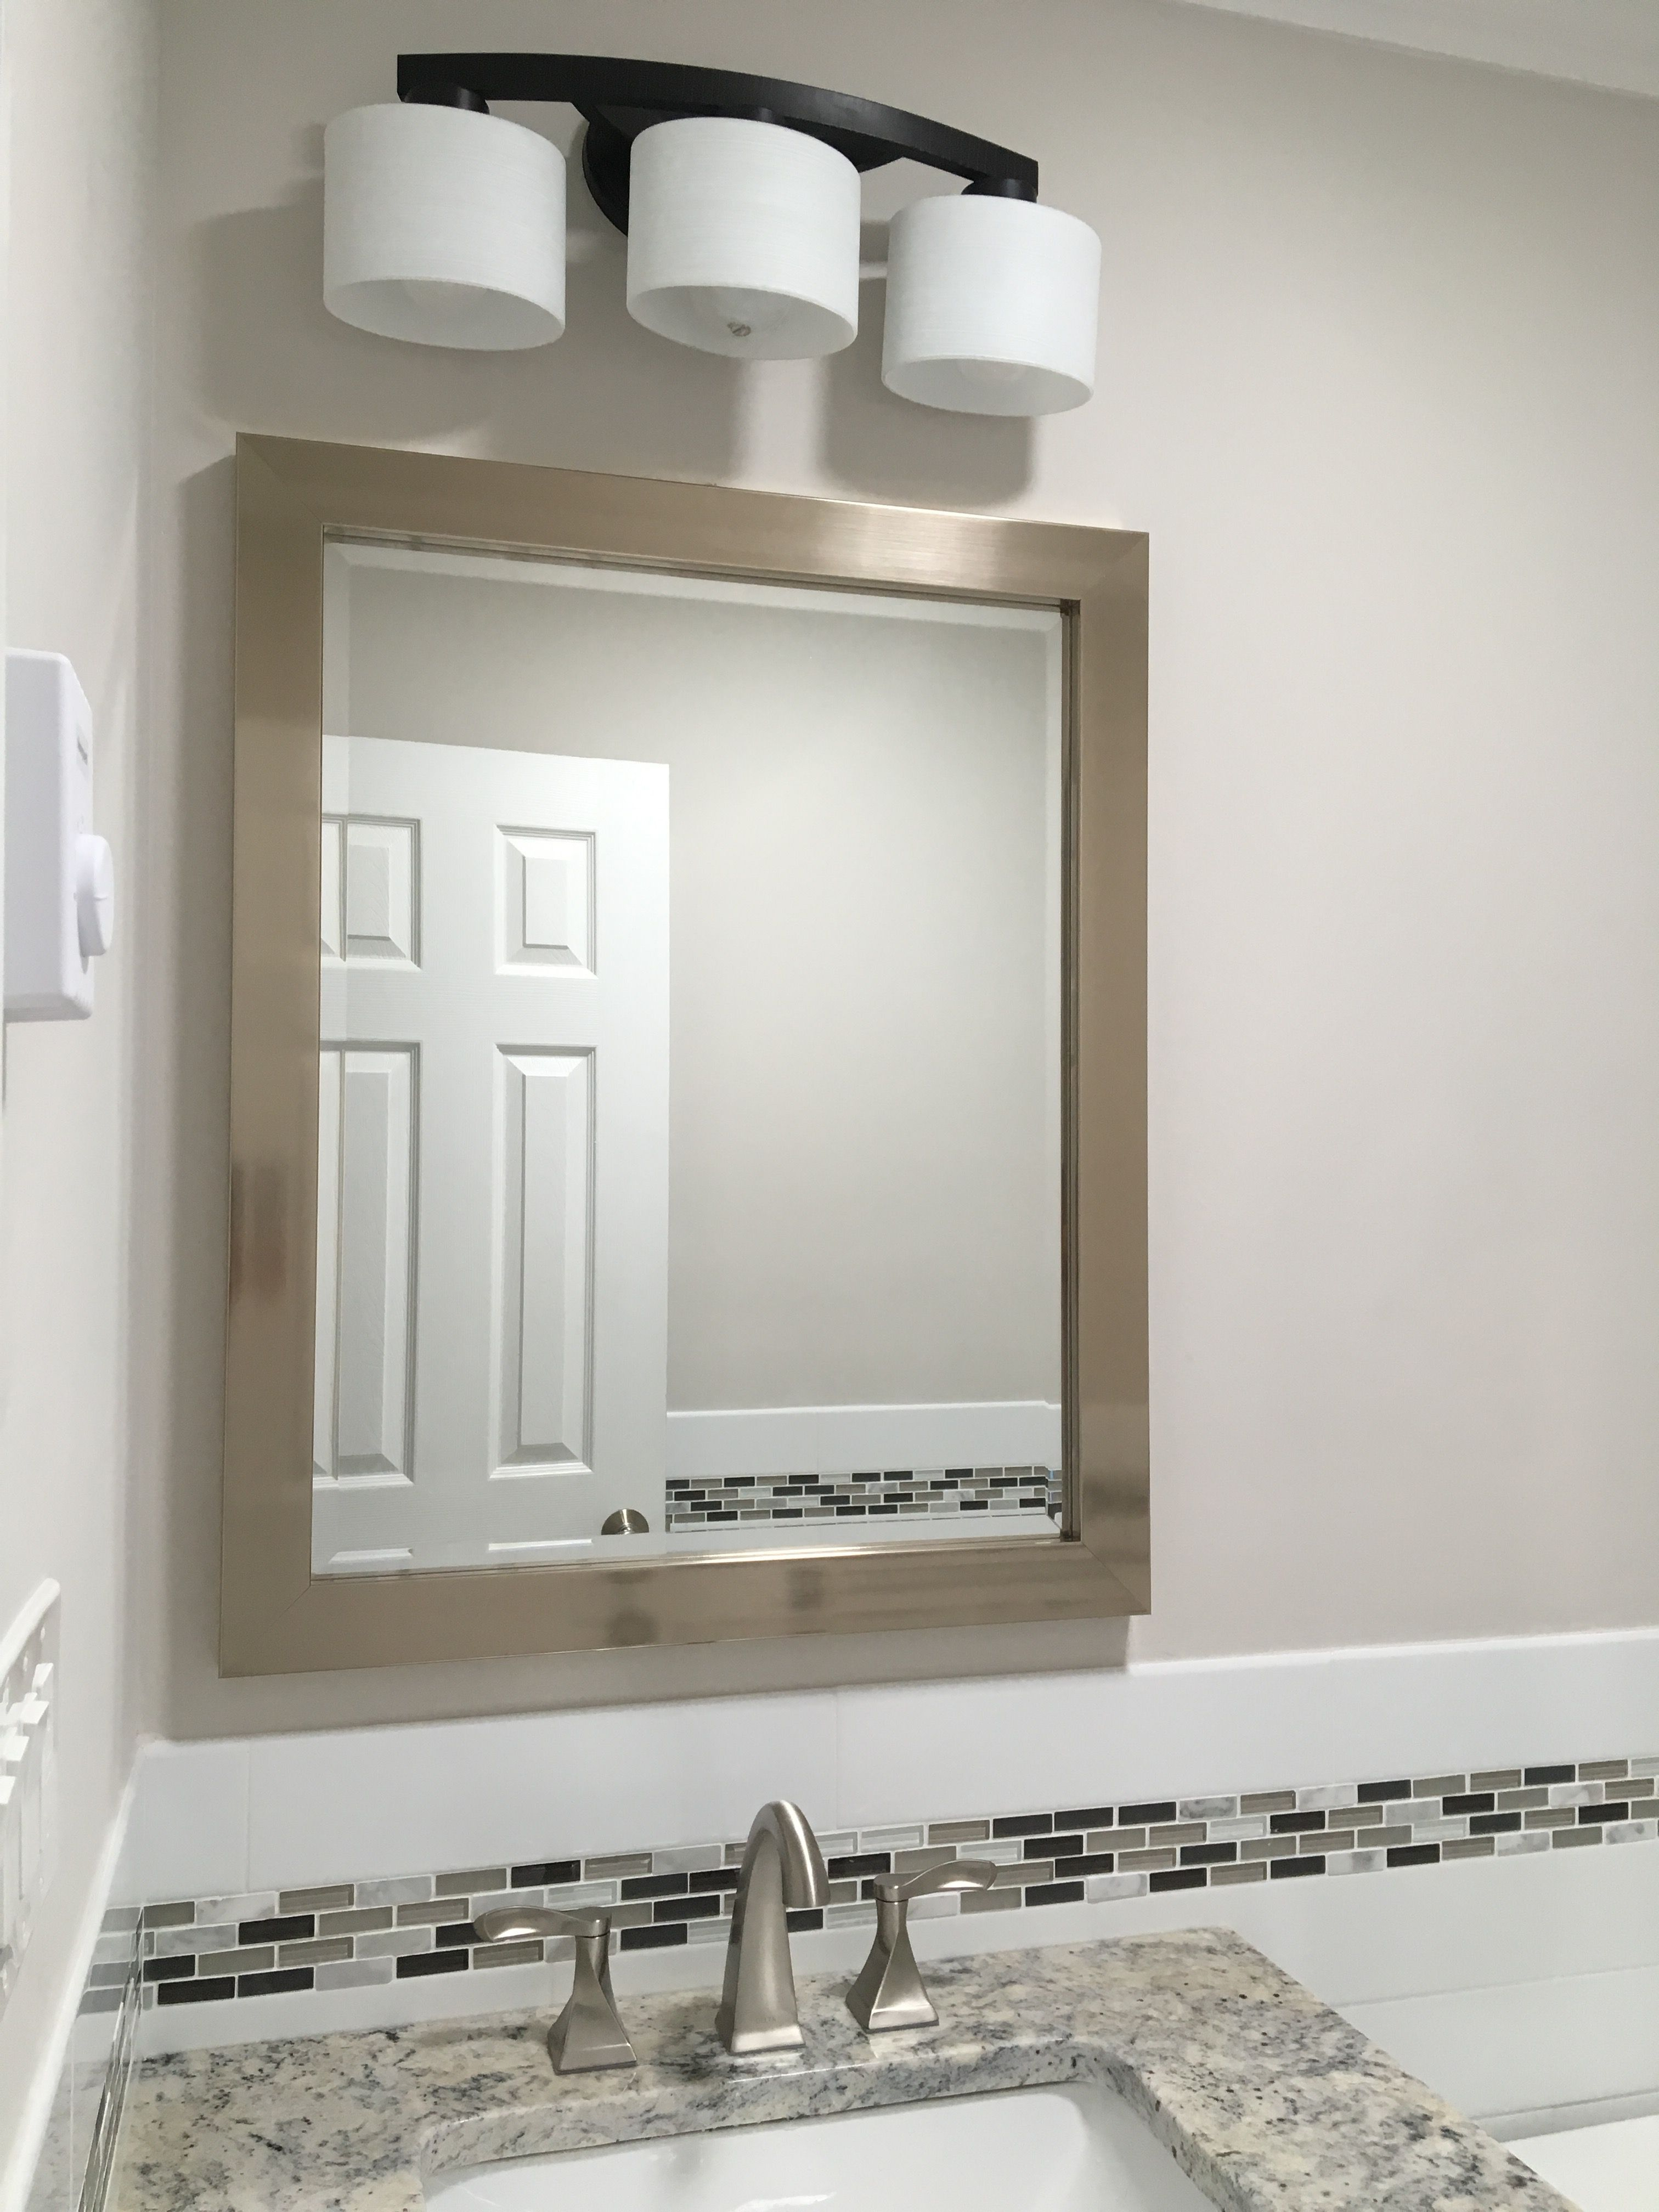 Benjamin Moore Balboa Mist Wall Color Mirror From Home Depot